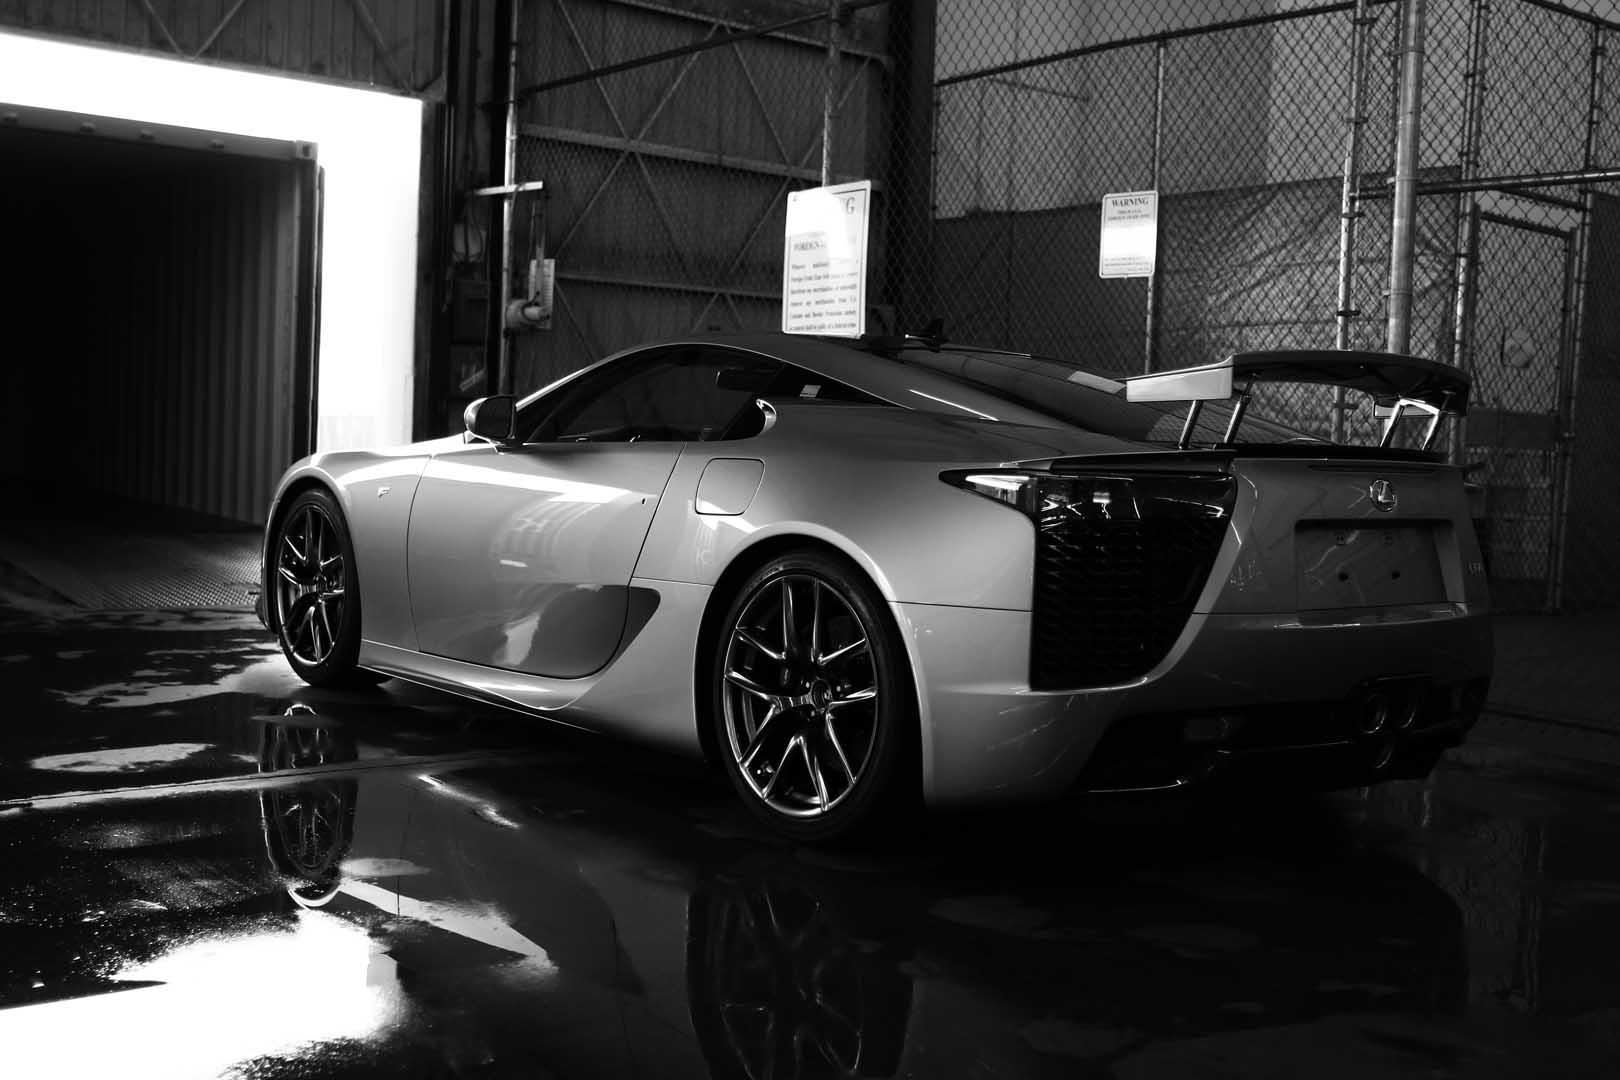 lexus lfa 499 arrives in the usa lexus enthusiast. Black Bedroom Furniture Sets. Home Design Ideas